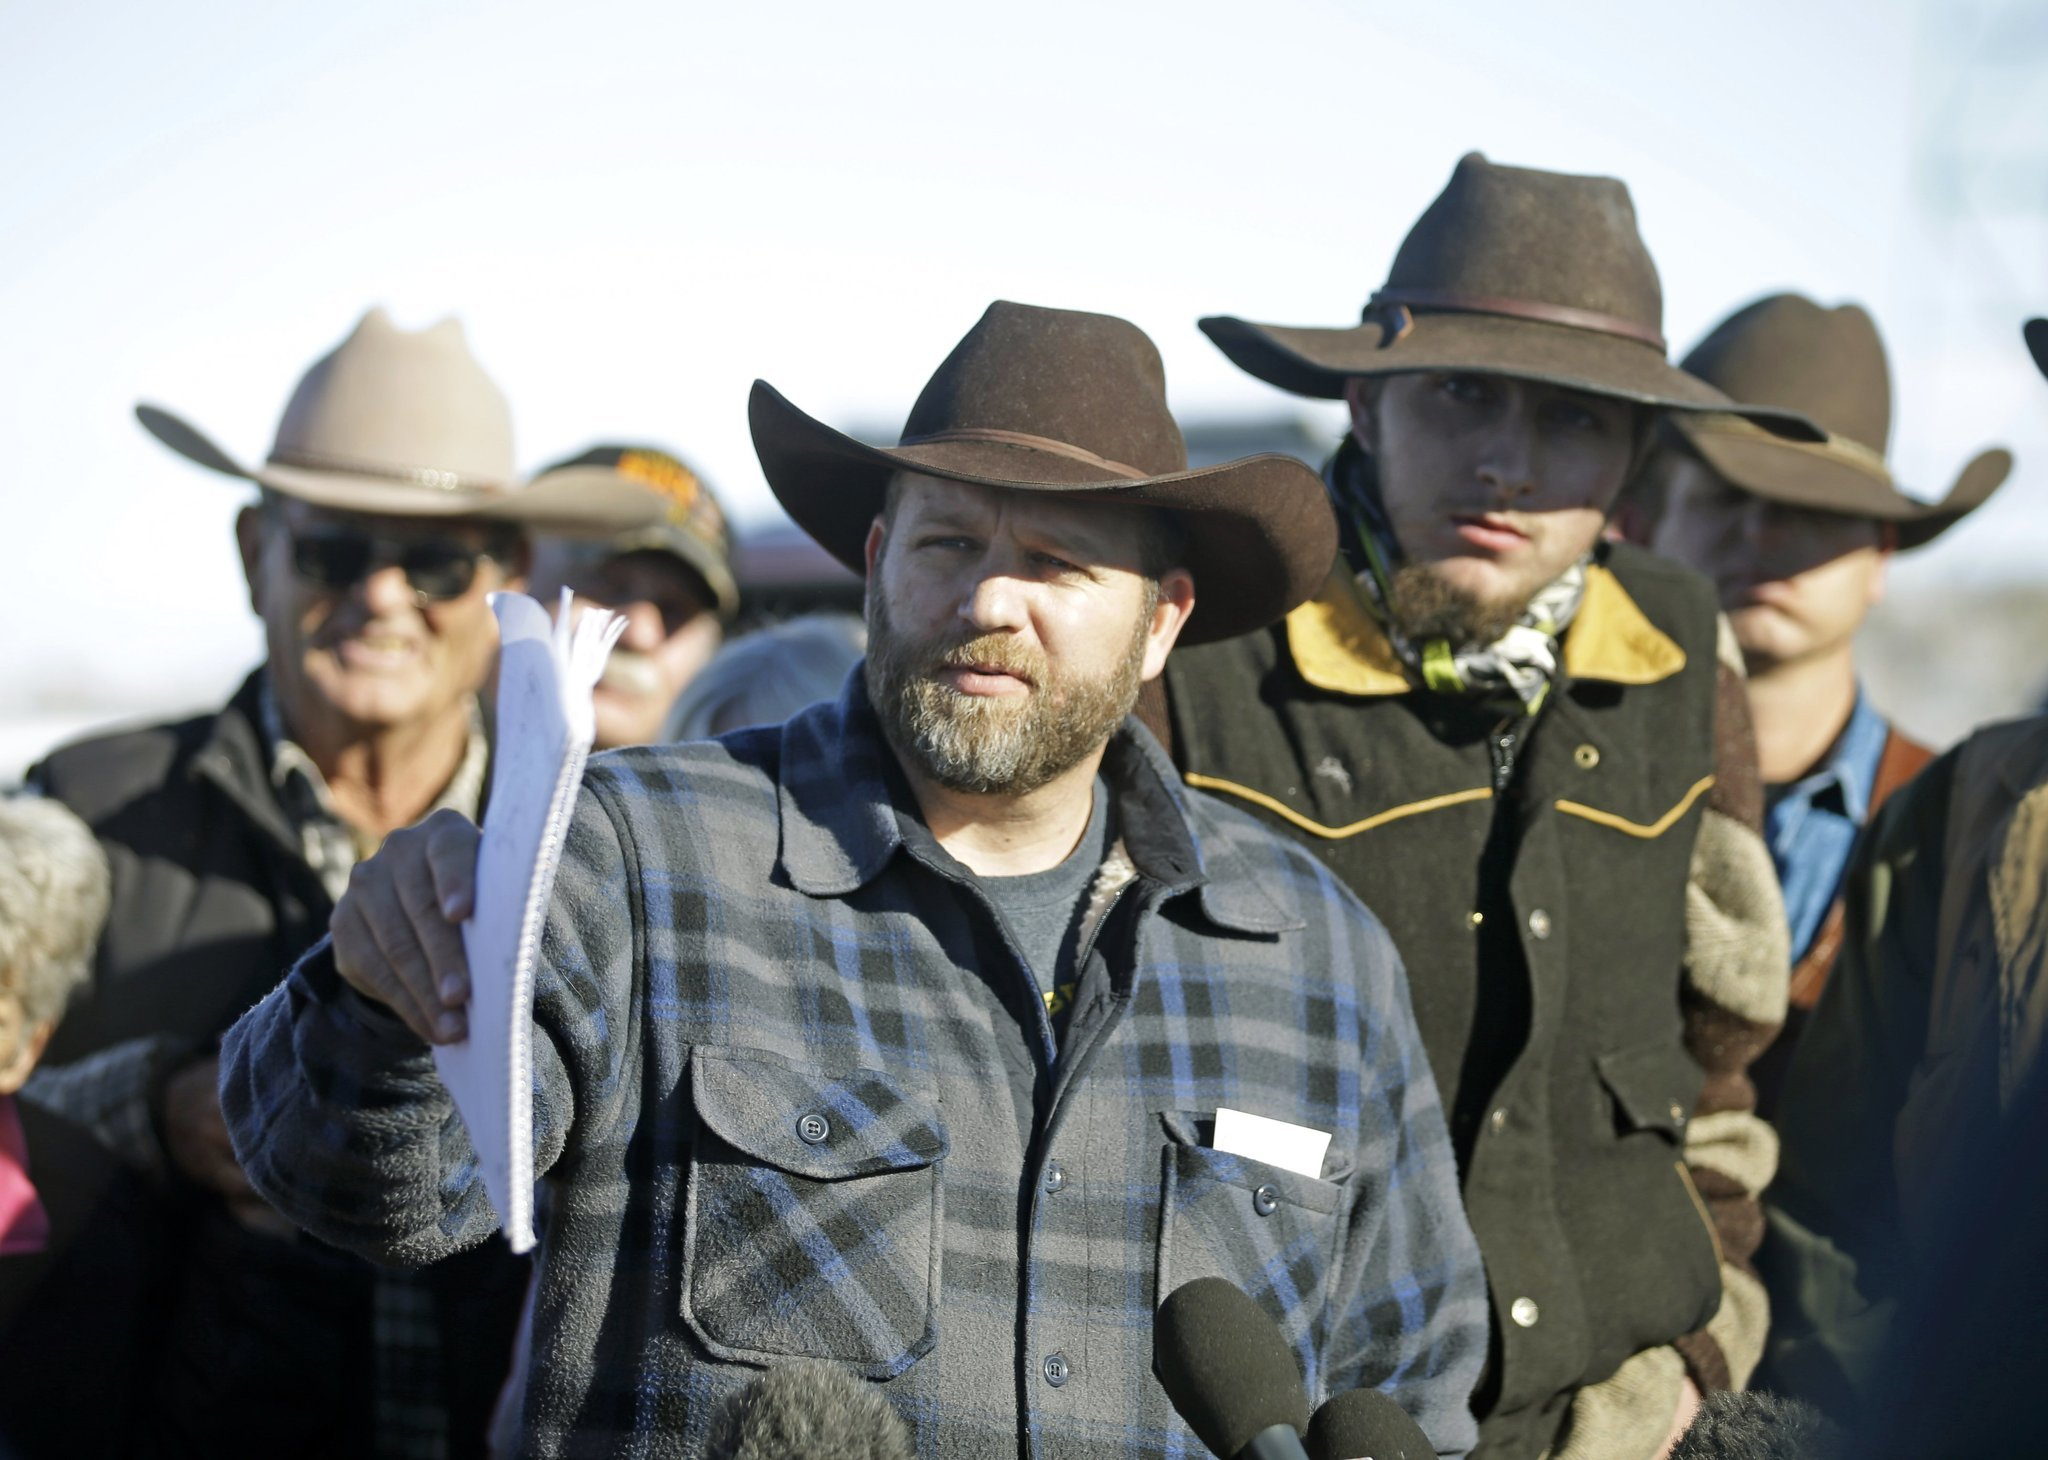 Oregon occupation spokesman reportedly killed, eight other protesters arrested